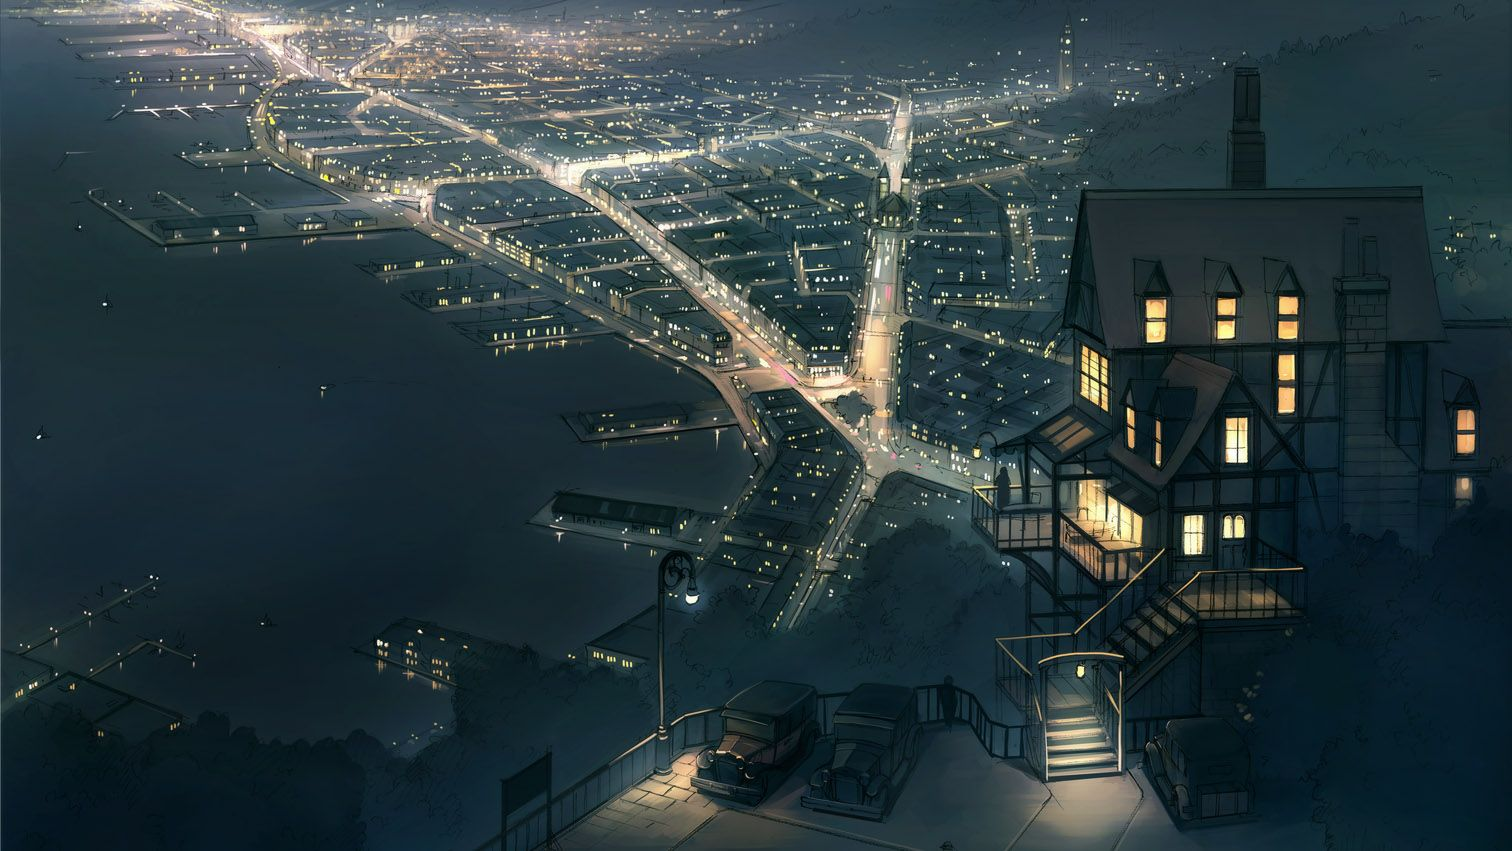 My Collection Of Anime Sceneries Anime City Anime Scenery Scenery Wallpaper Anime city night wallpaper 4k